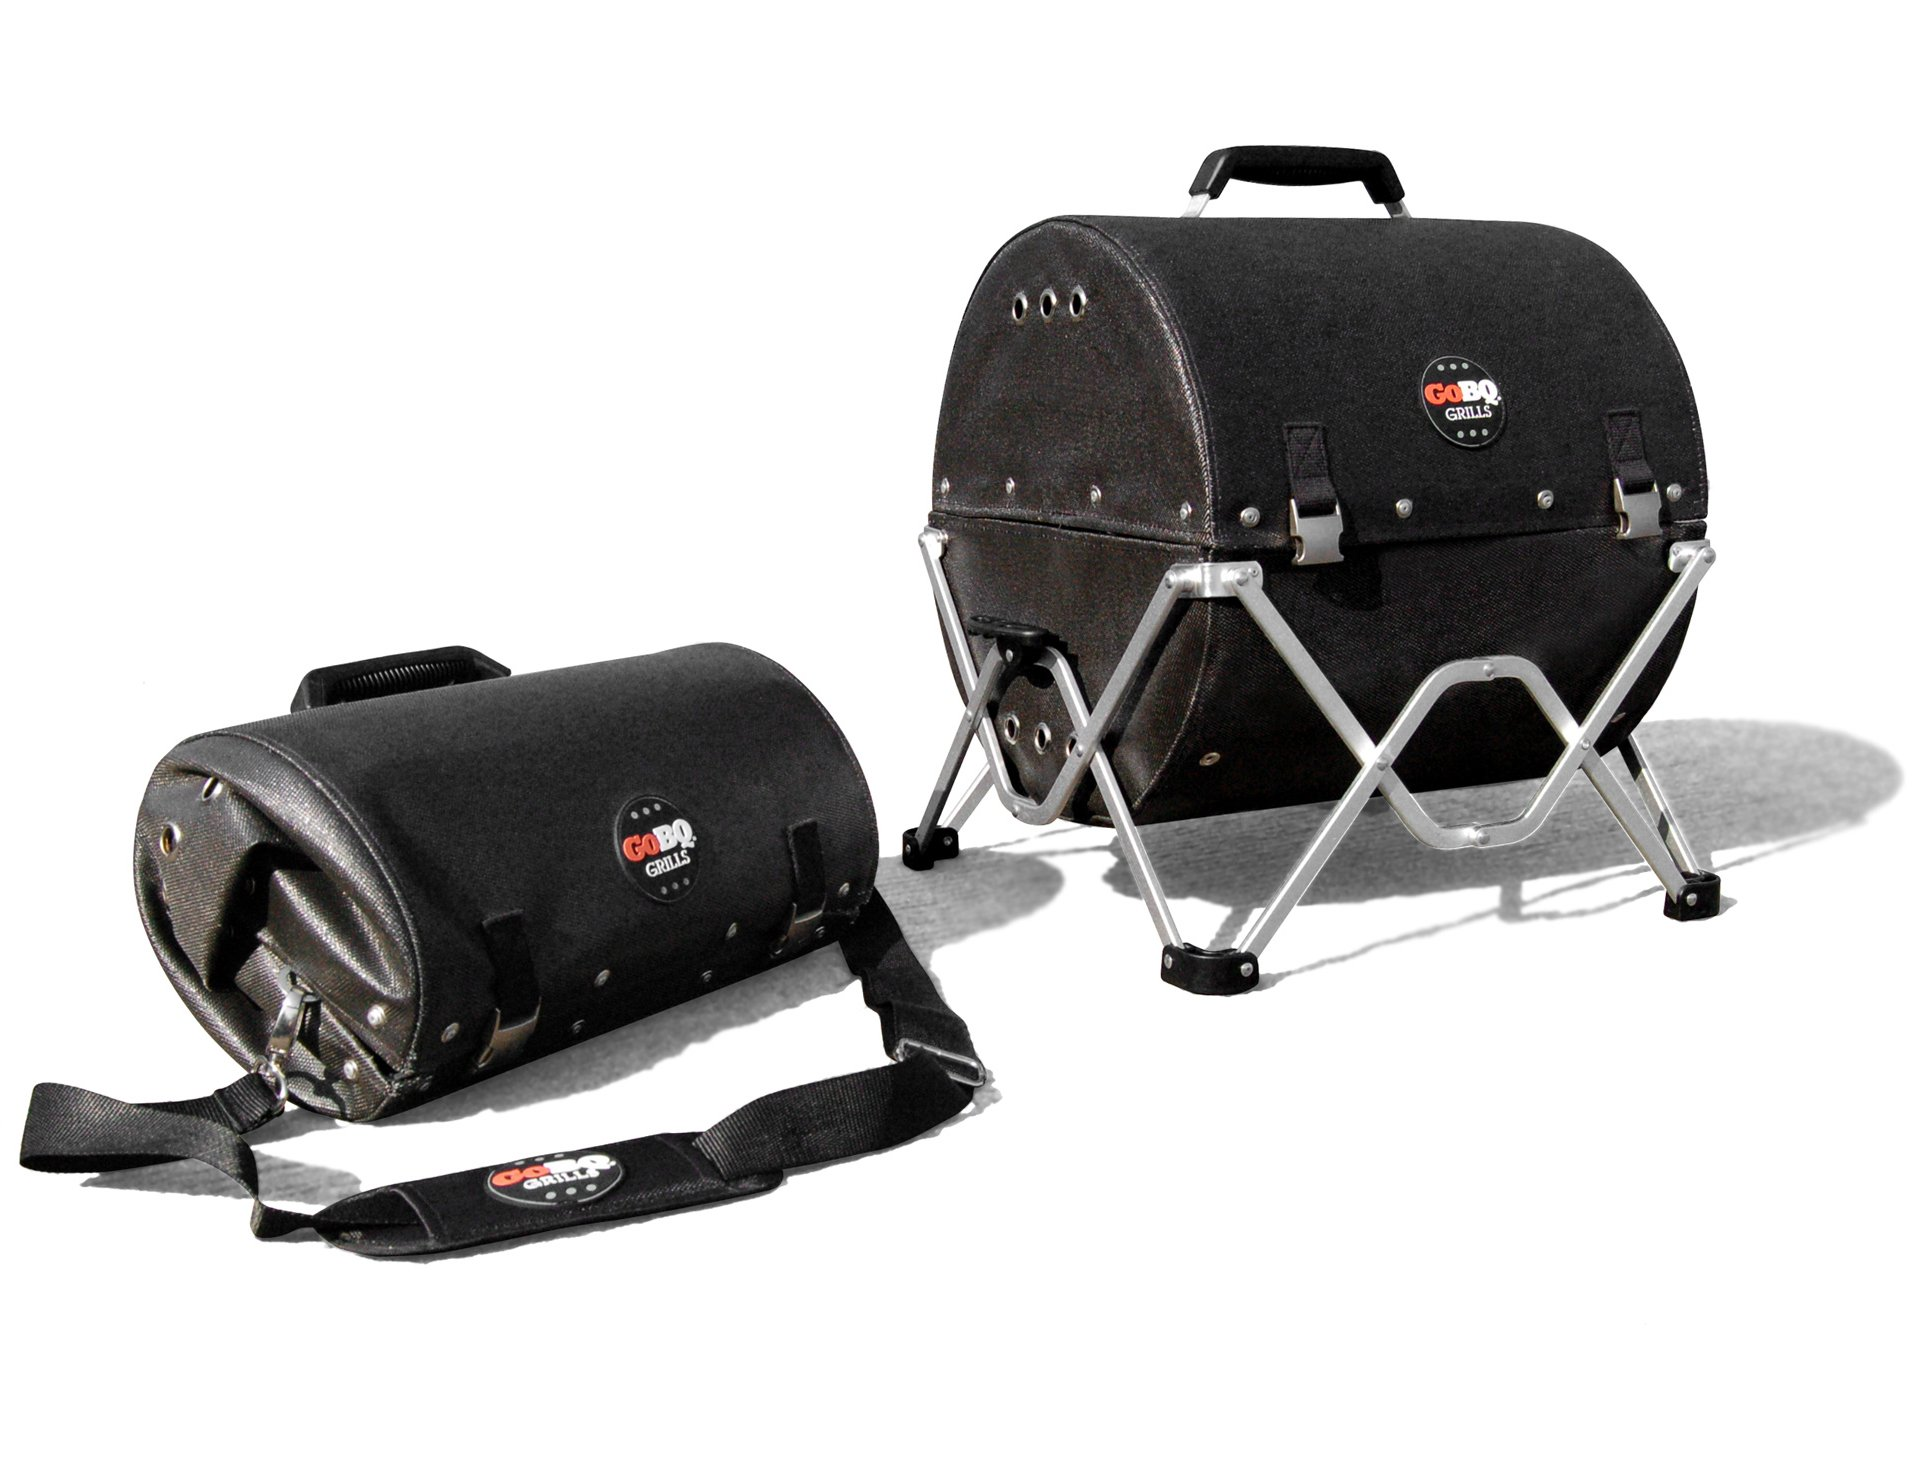 GoBQ Portable Charcoal Grill – Fits in a Backpack – Perfect for Camping, Tailgating, Travel, Hiking, Boating, Fishing, Hunting, Biking, The Beach, RVs, College Students, Urbanites and Gifting